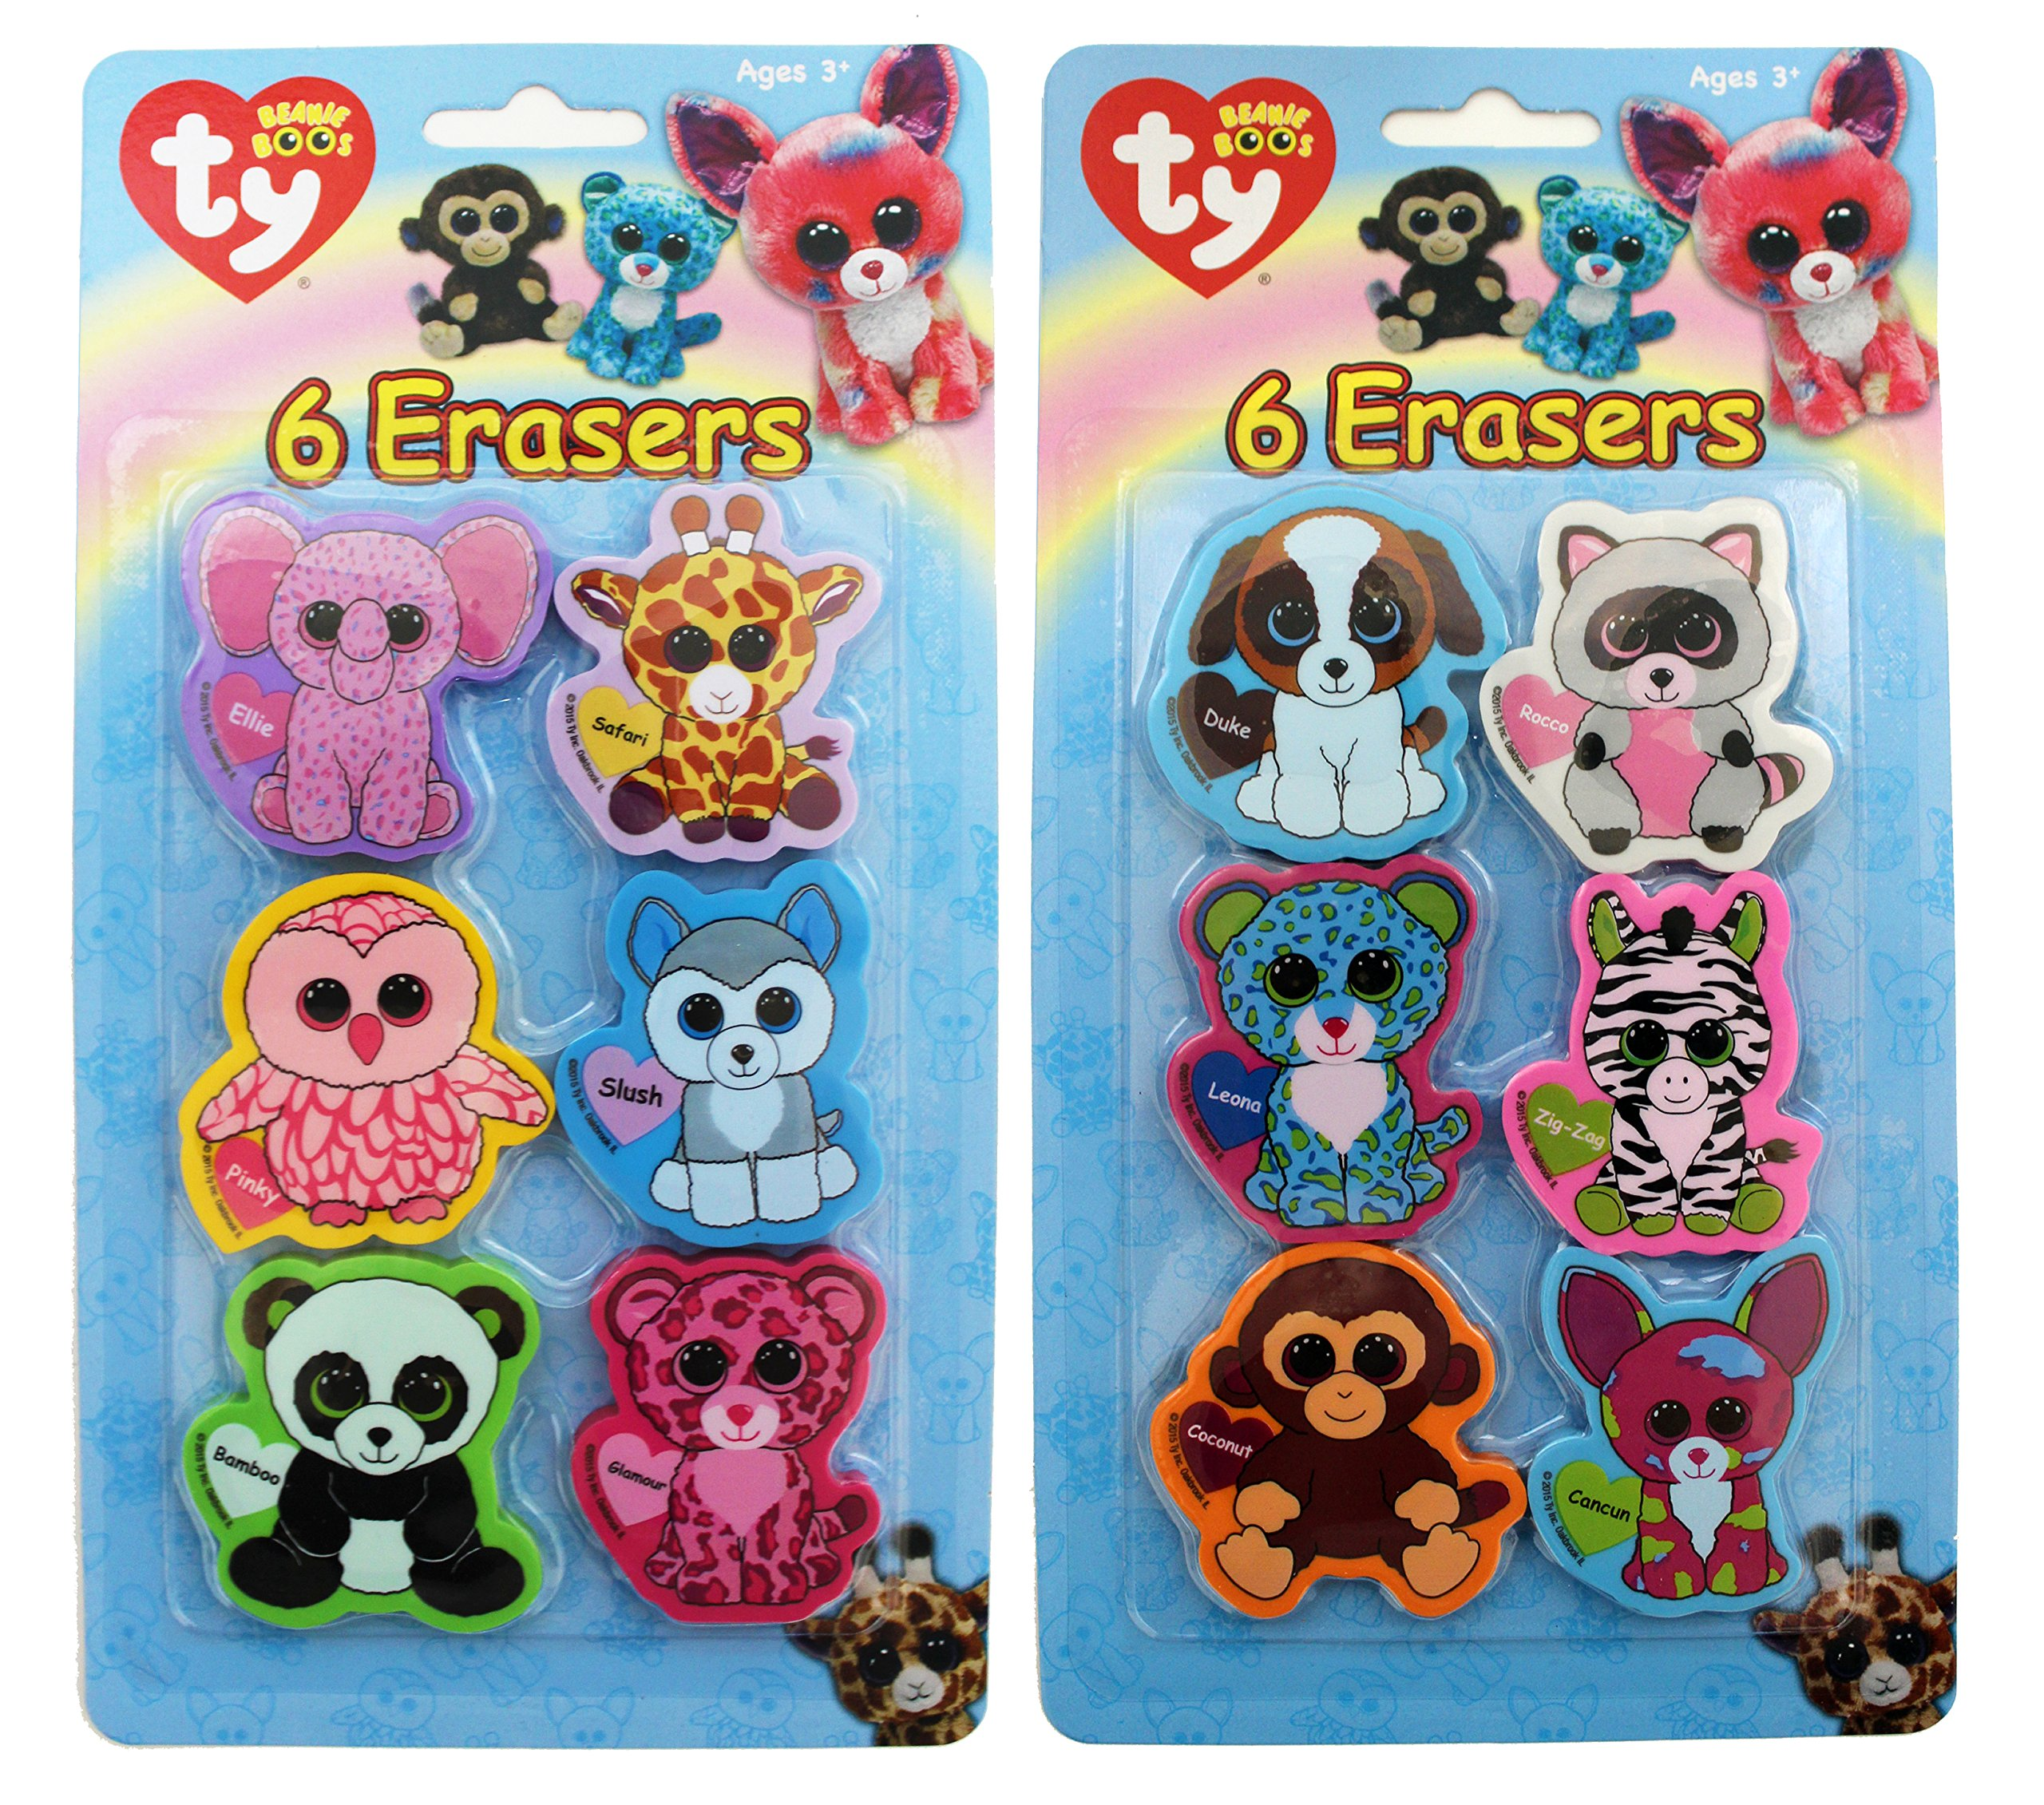 Ty Beanie Boos Die Cut Character Erasers, 2 x 2 Inches Each, Pack of 6, Assortment Will Vary (816-3) by Ty Beanie Boos